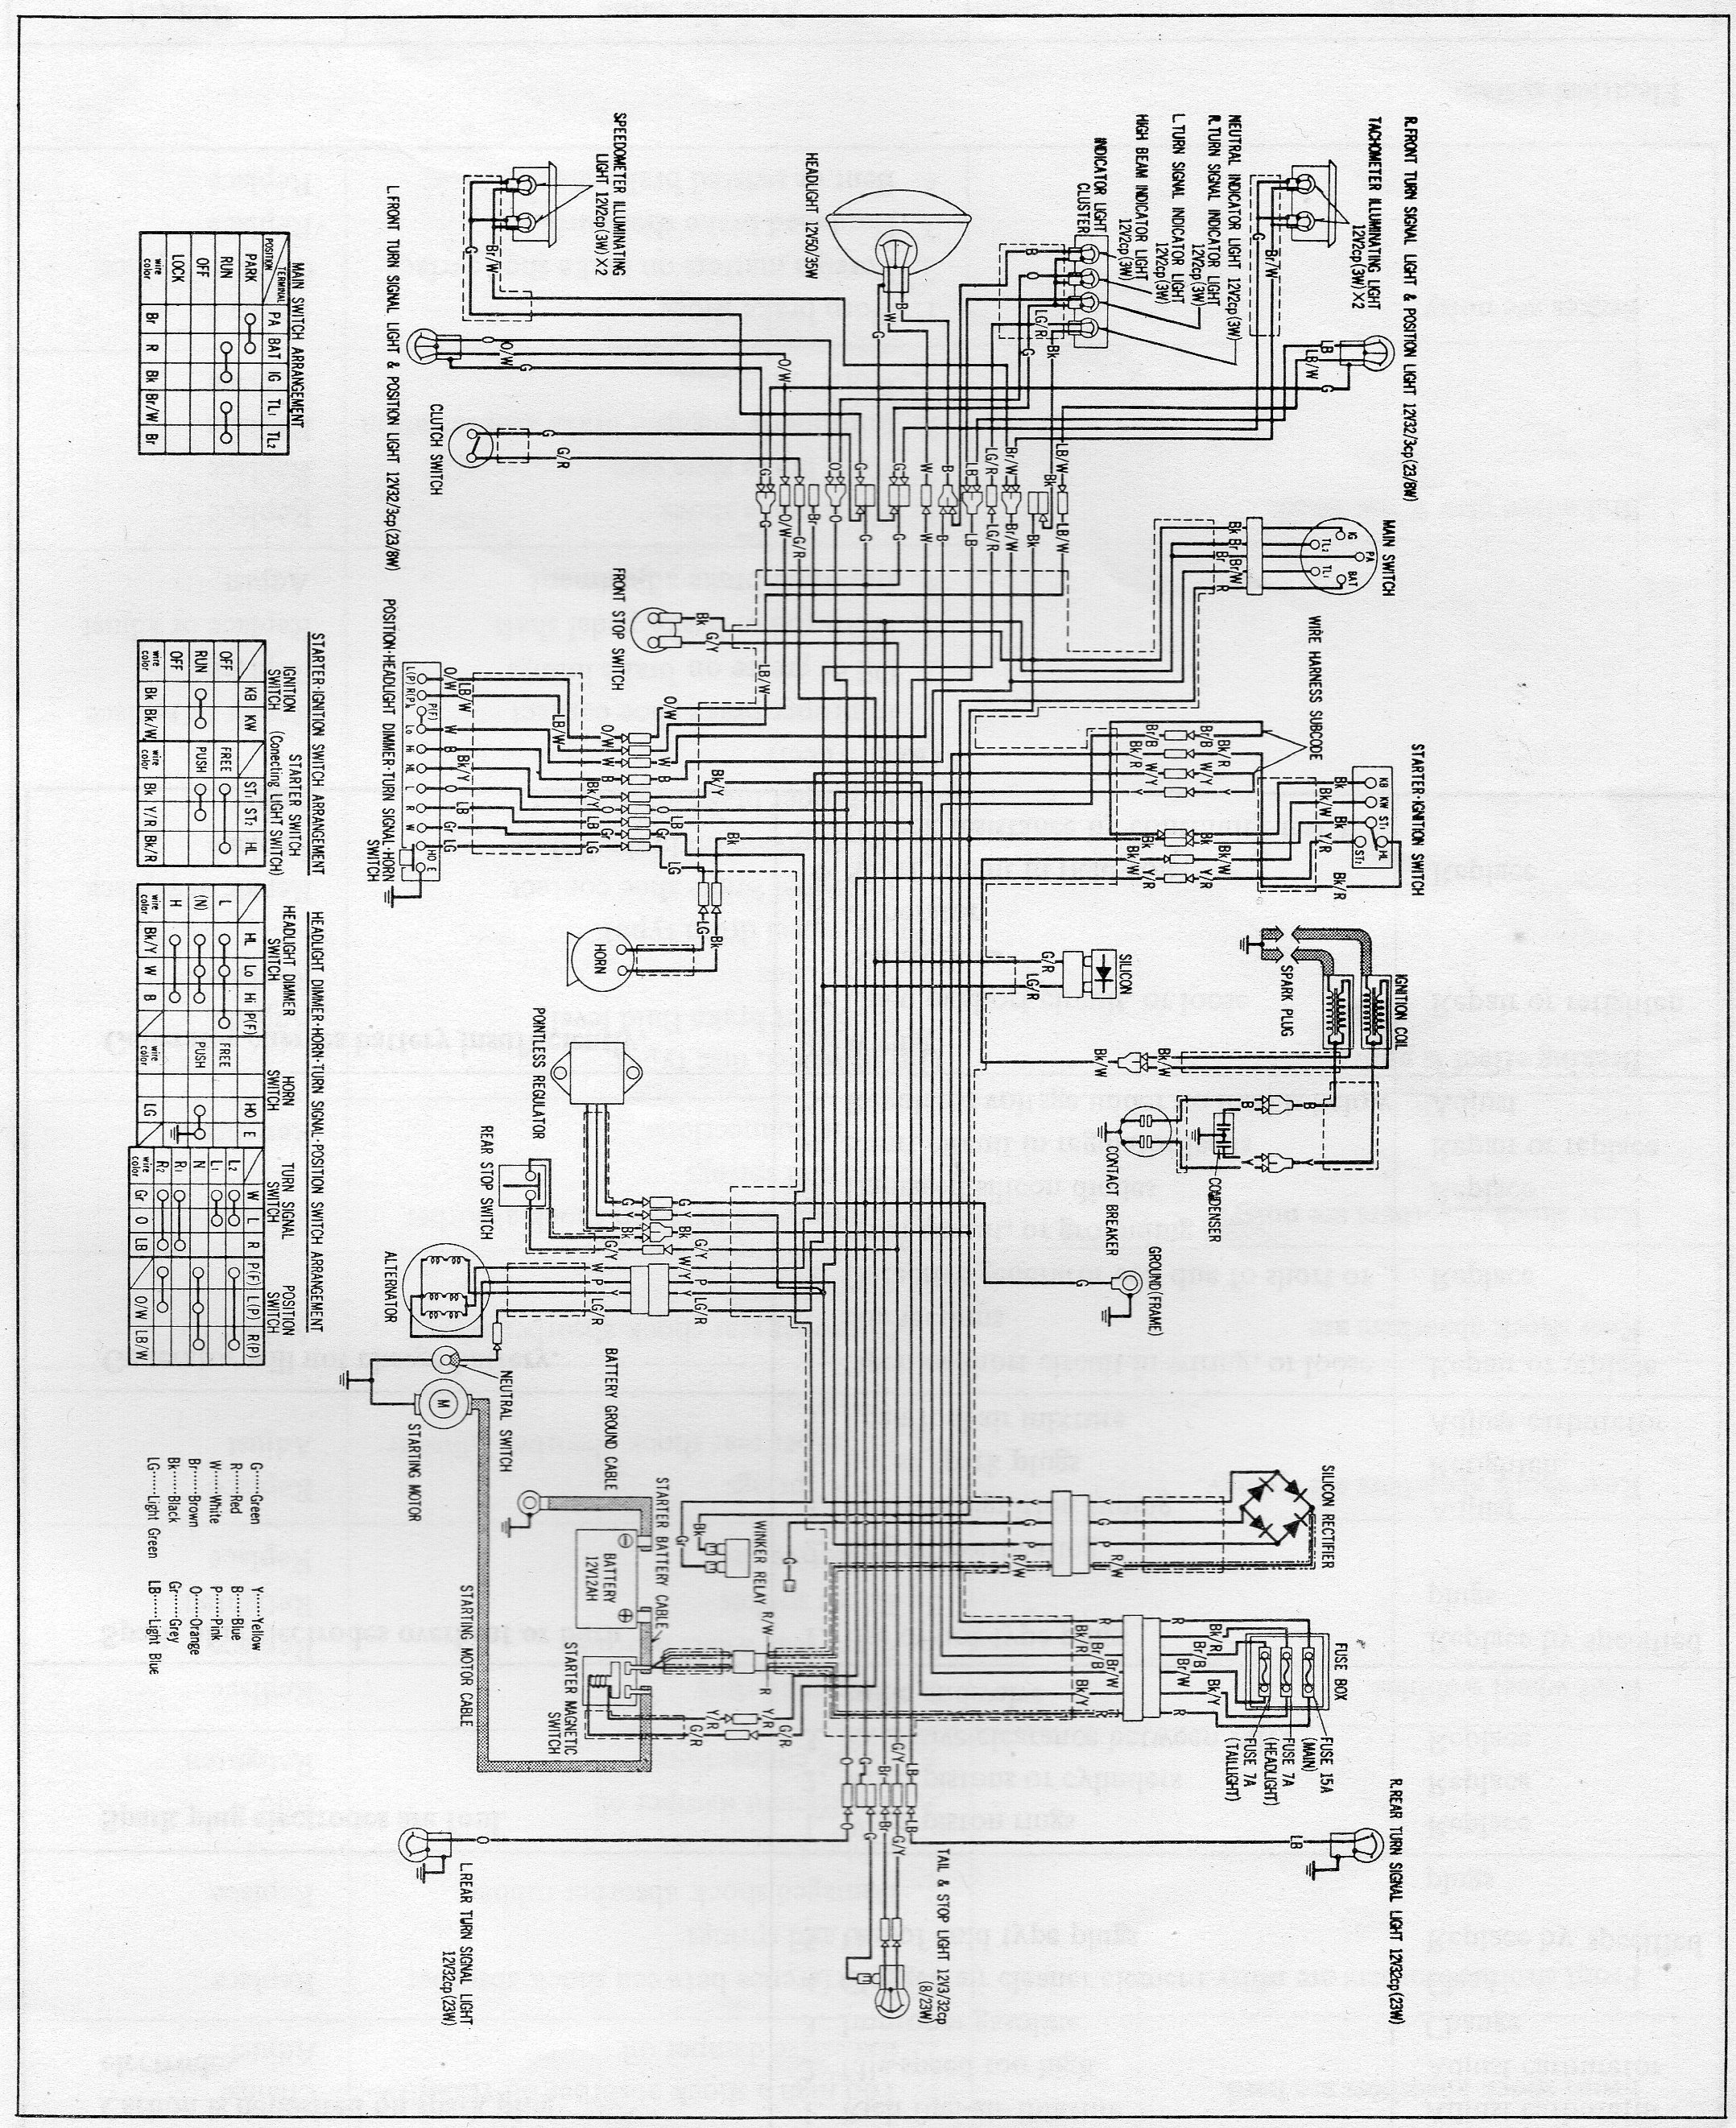 diagram] key wiring diagram full version hd quality wiring diagram -  diagramofchart.bandbannamaria.it  diagram database - bandbannamaria.it